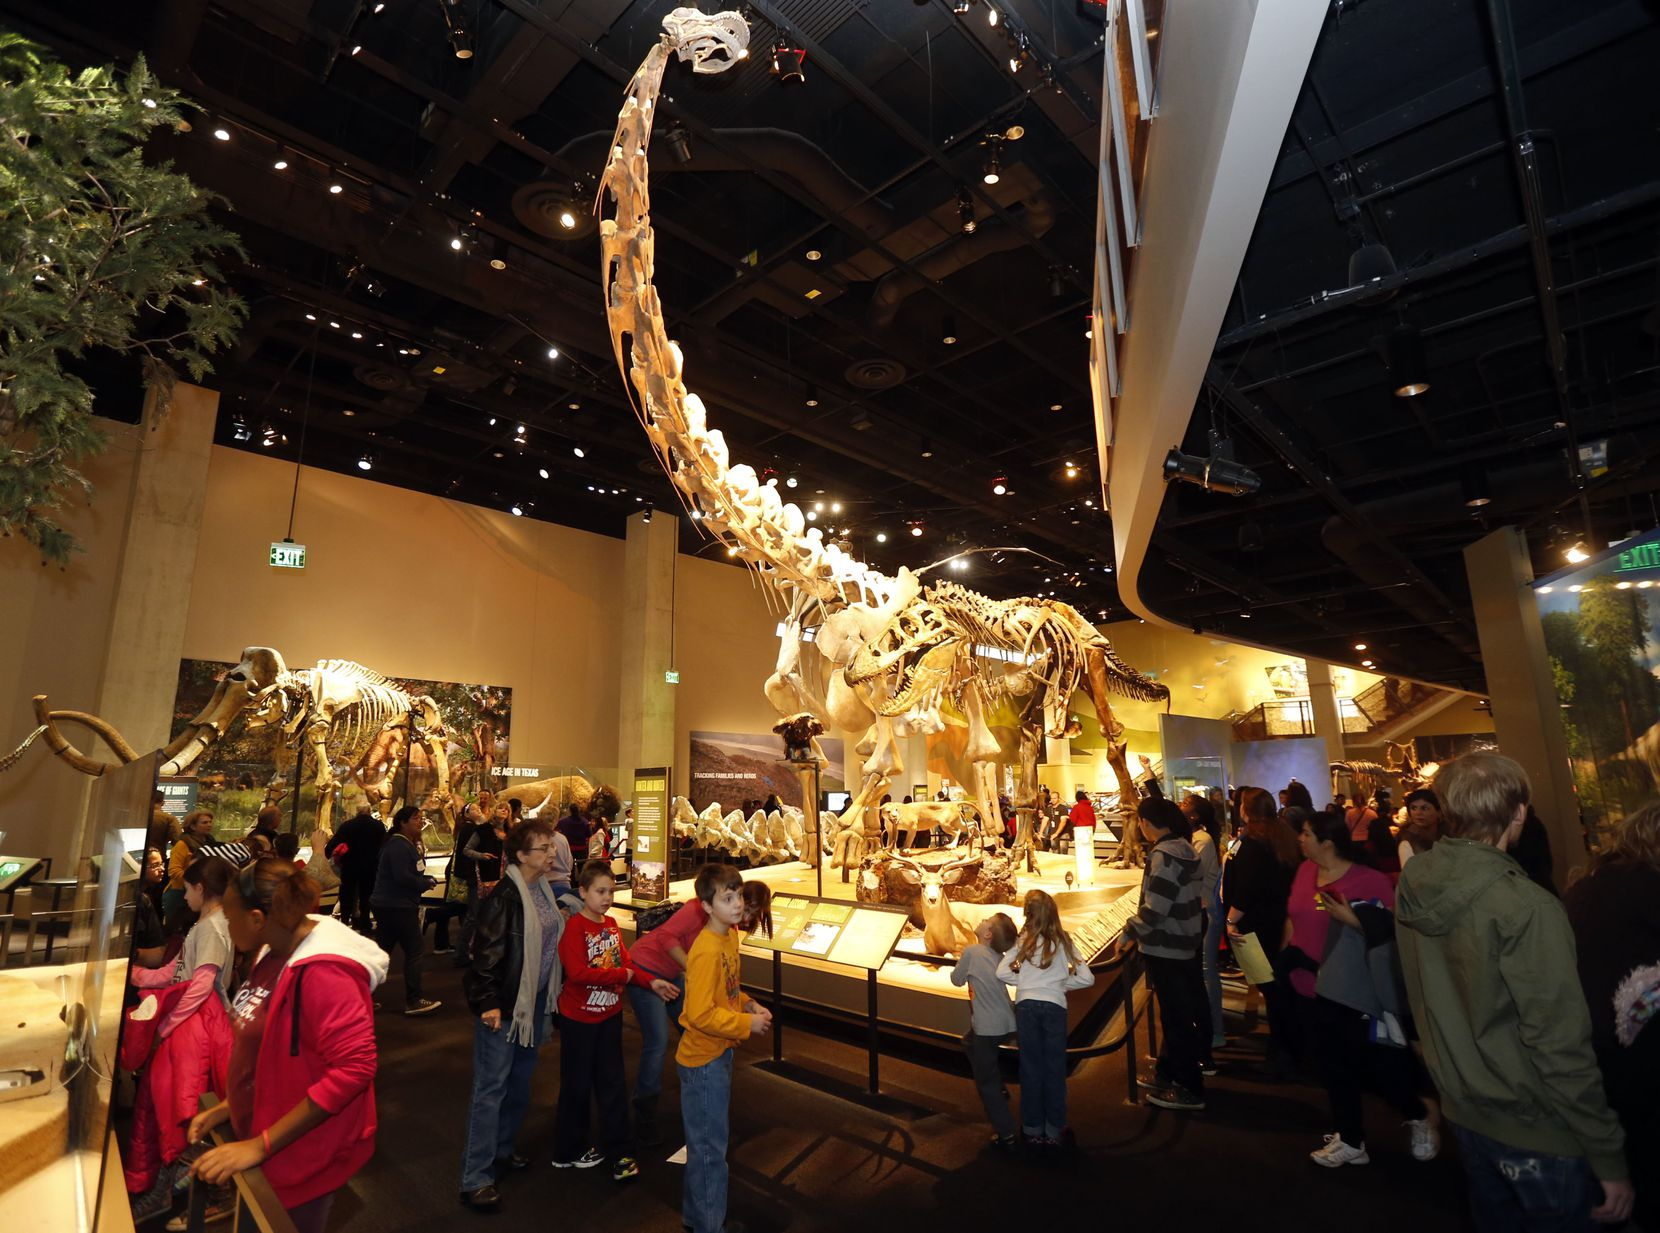 Crowds look up at an Alamosaurus in the dinosaur exhibit at the Perot Museum of Nature and Science.